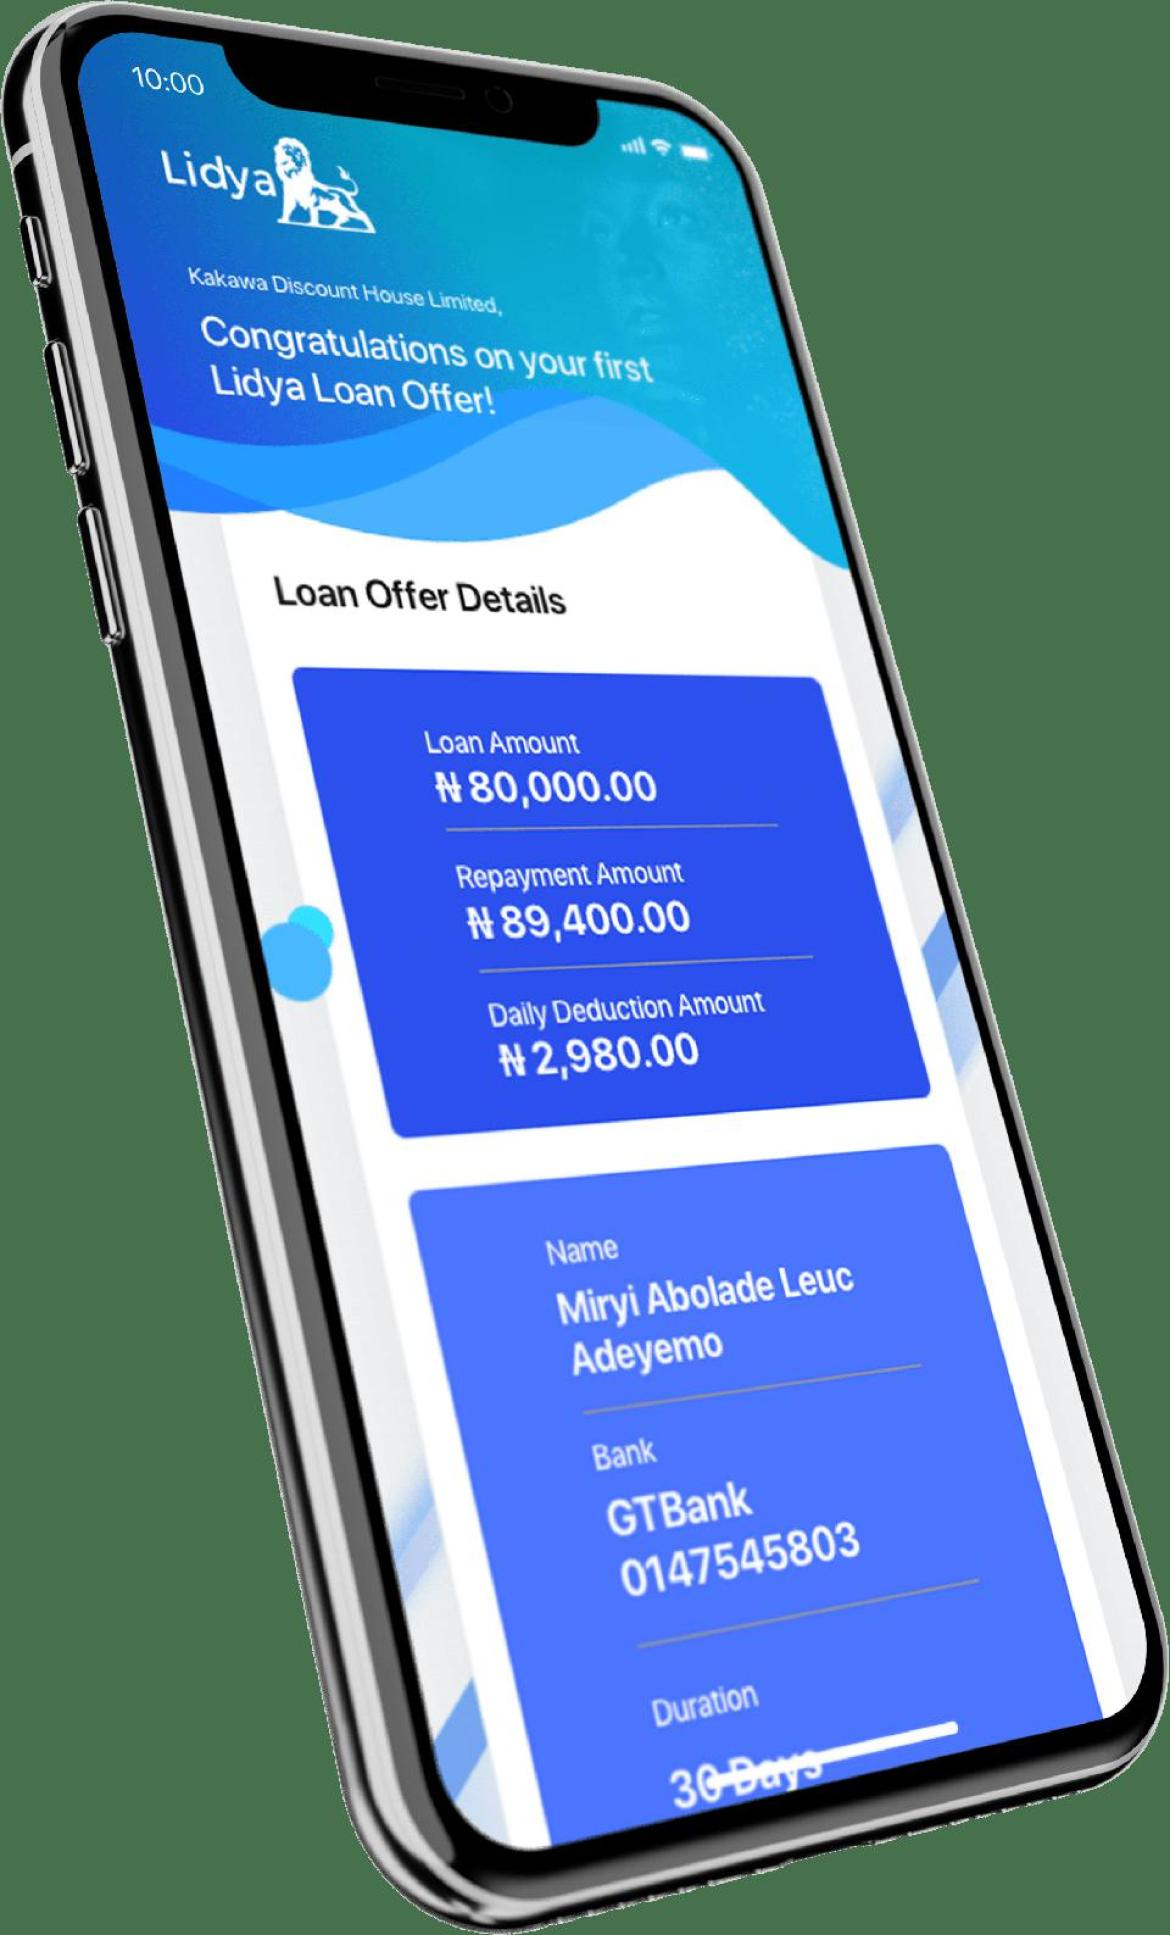 Lidya is a digital SME lender launched in Nigeria.